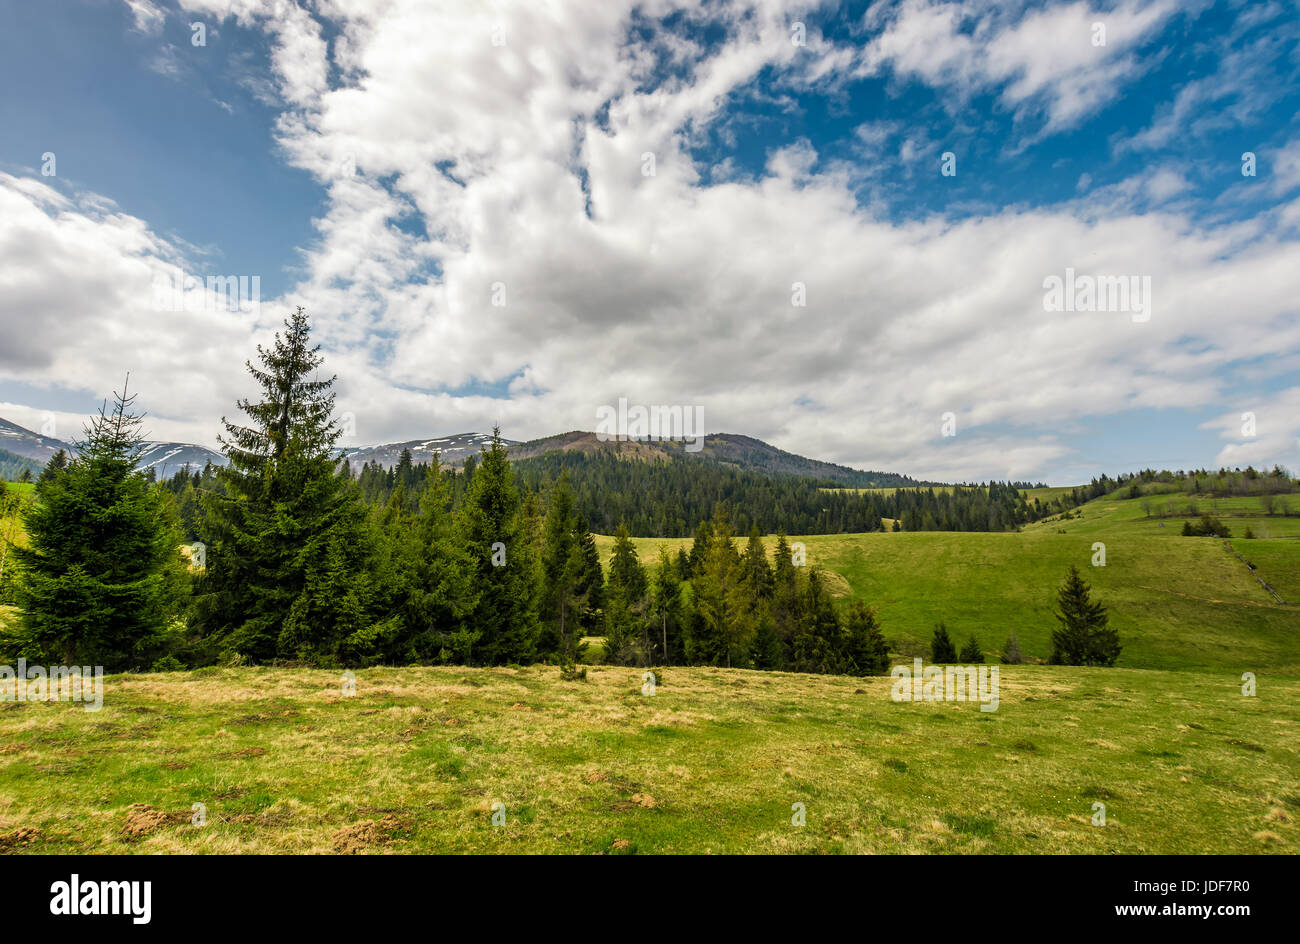 Conifer forest on a hill on a bright sunny day. blue sky with clouds in summer countryside landscape - Stock Image